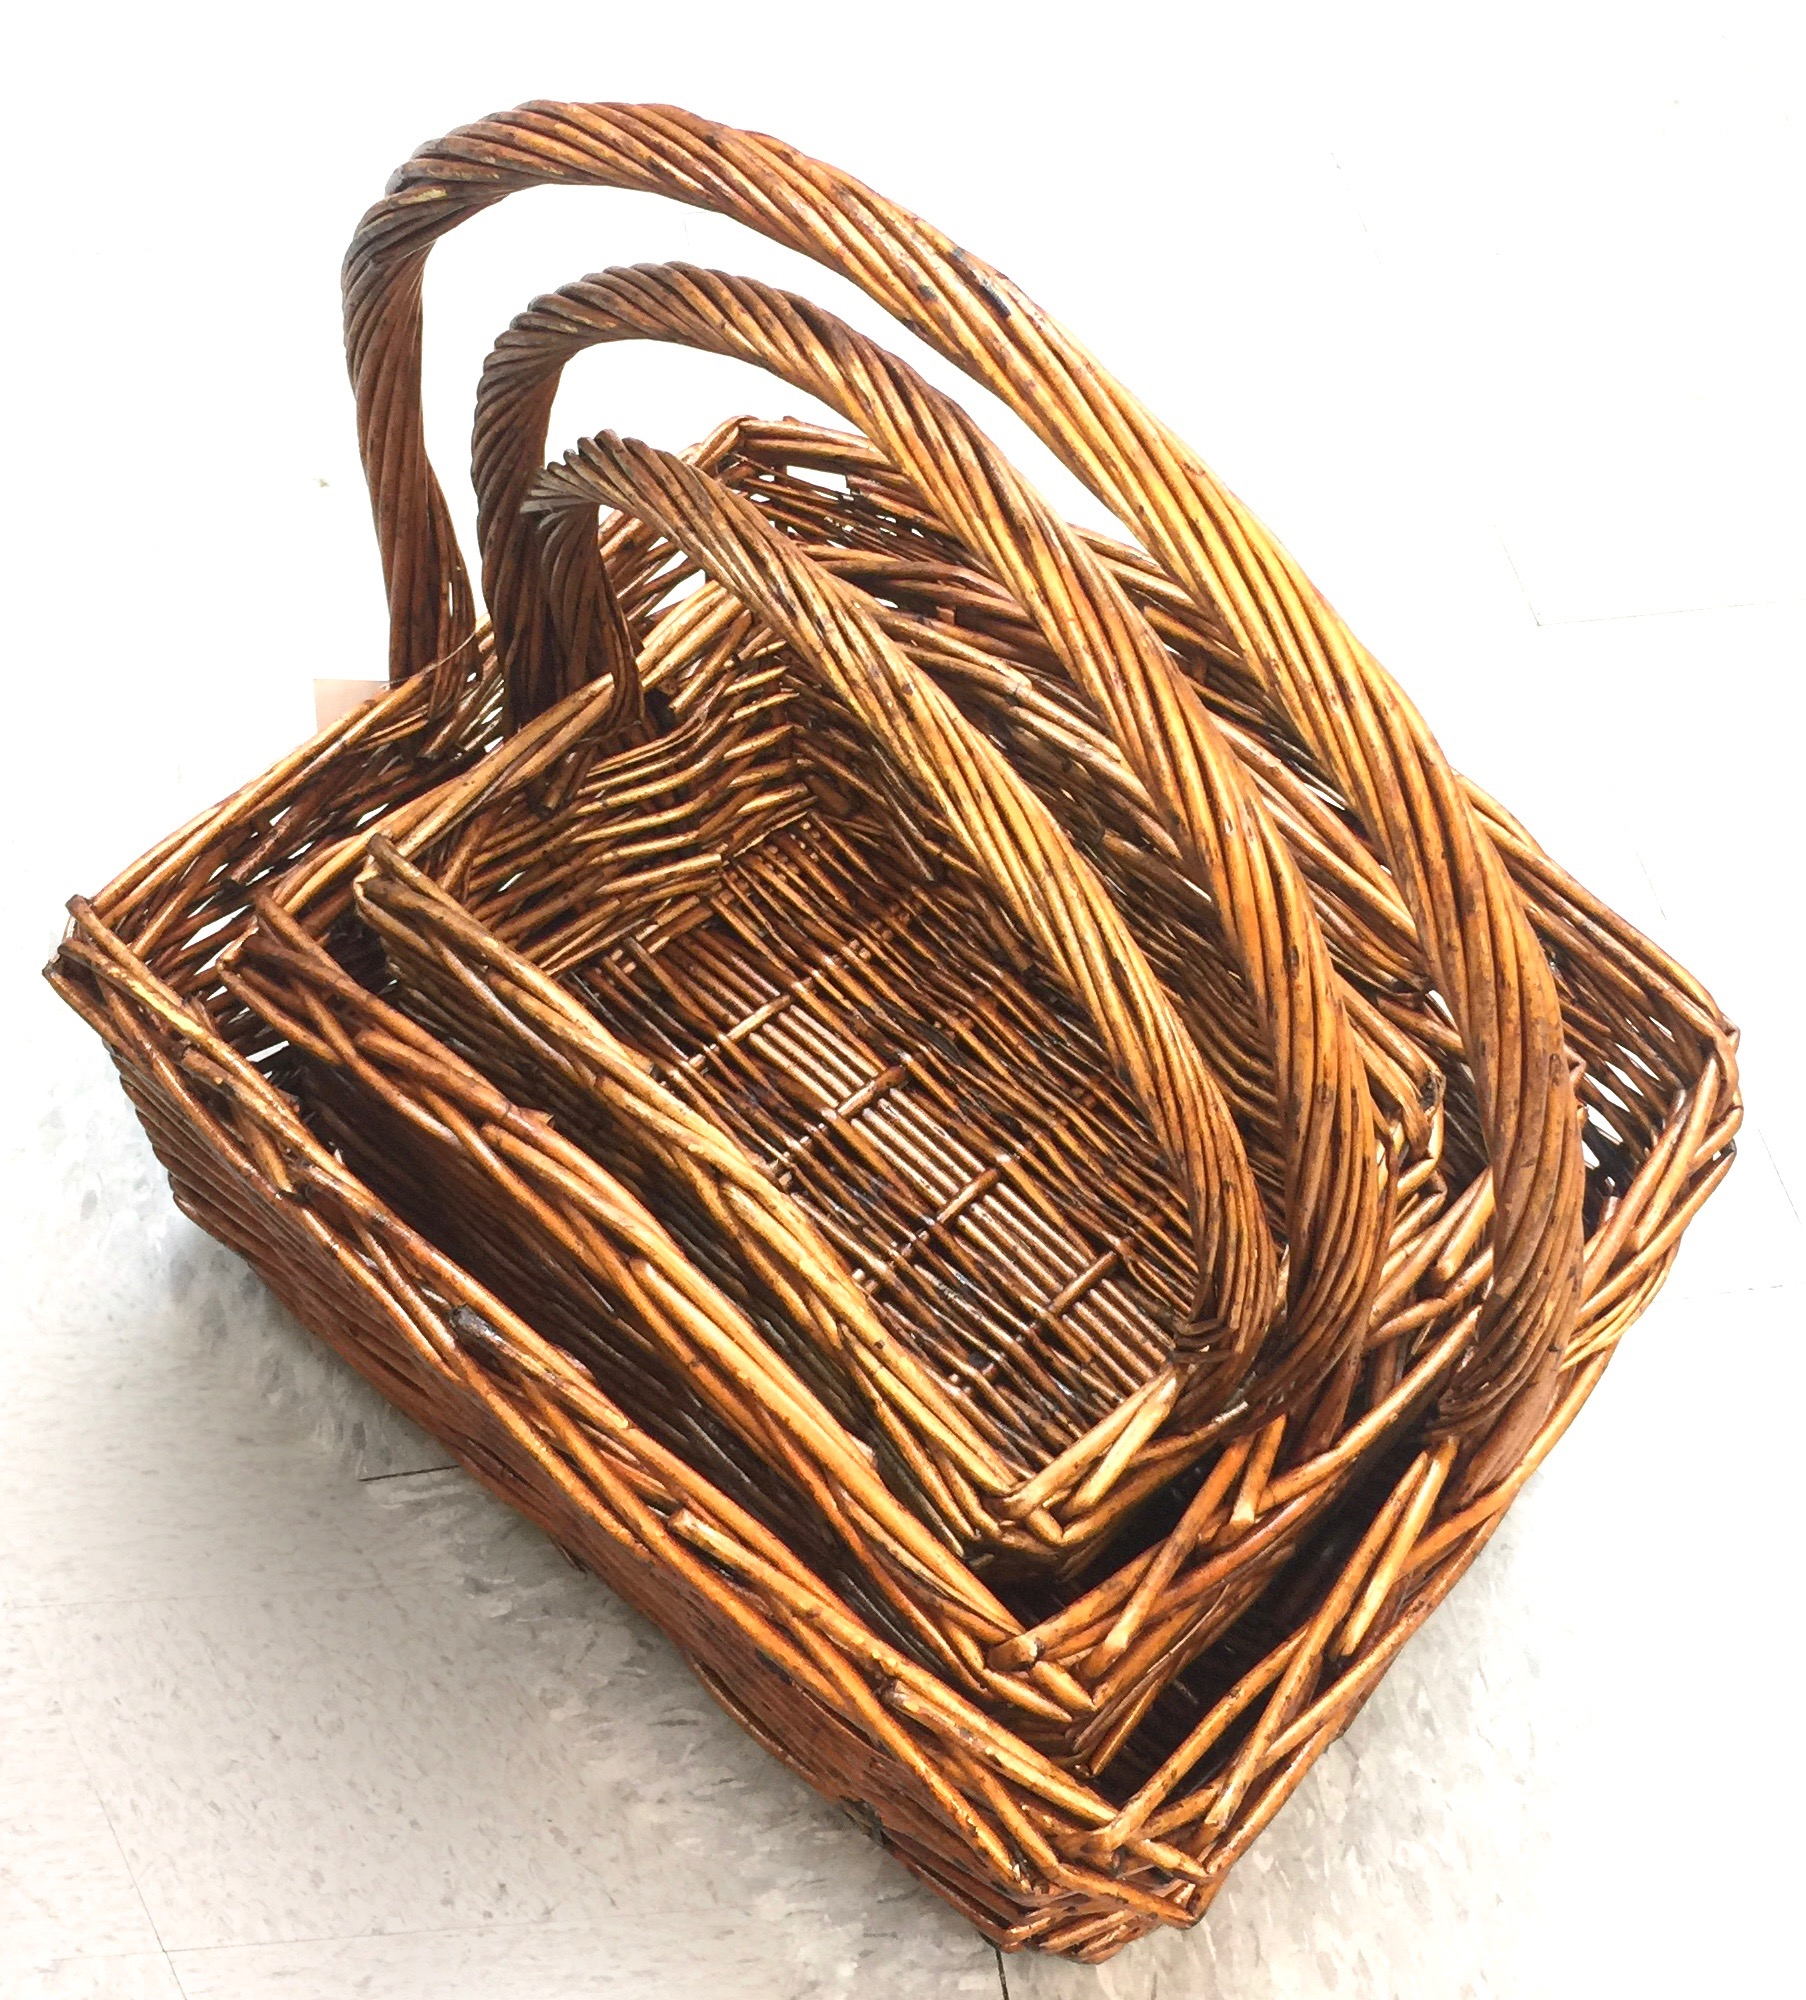 Wicker Basket Honey Boat Rect Set/3